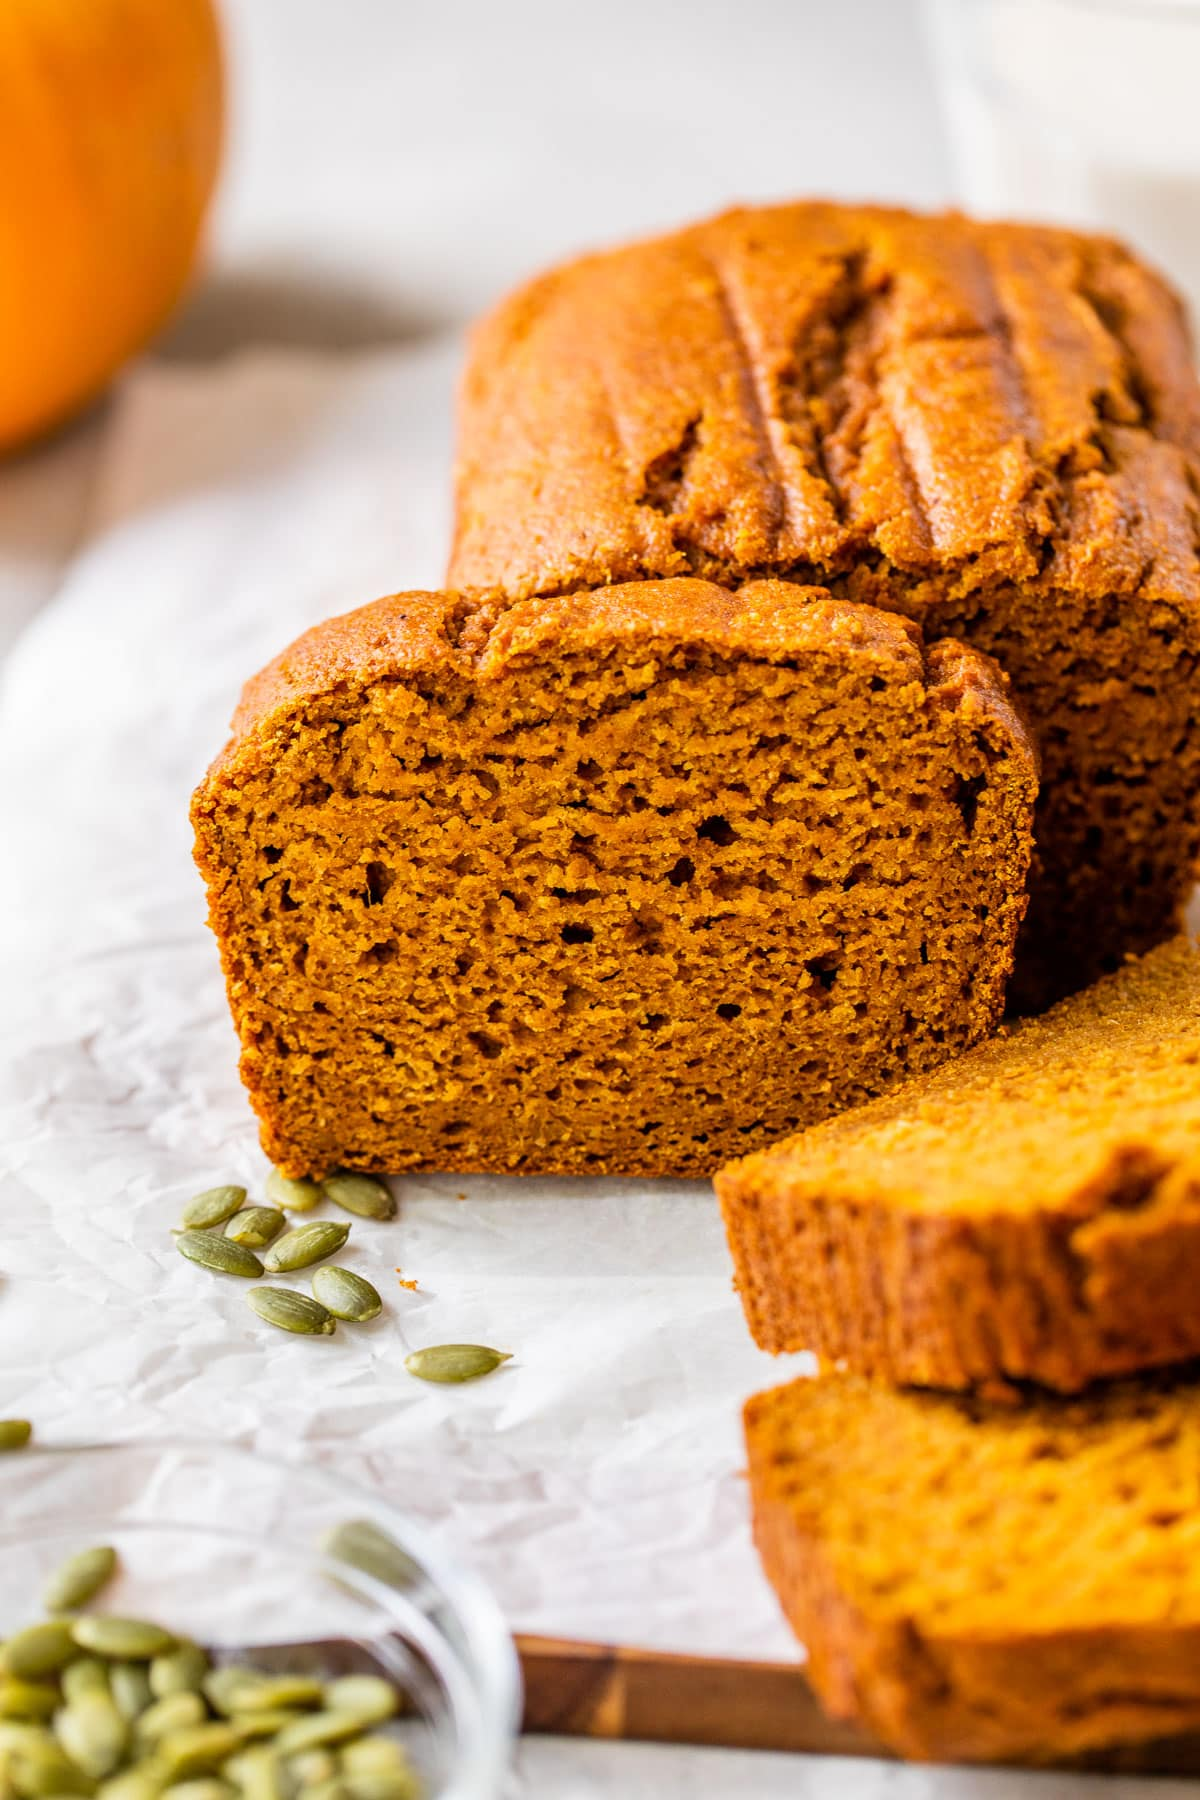 Healthy pumpkin bread is soft, moist, and delicious! Made withhoney, Greek yogurt, whole wheat flour, and millet, this easy one-bowl pumpkin bread recipe will be your new favorite! #healthy #recipe #pumpkin